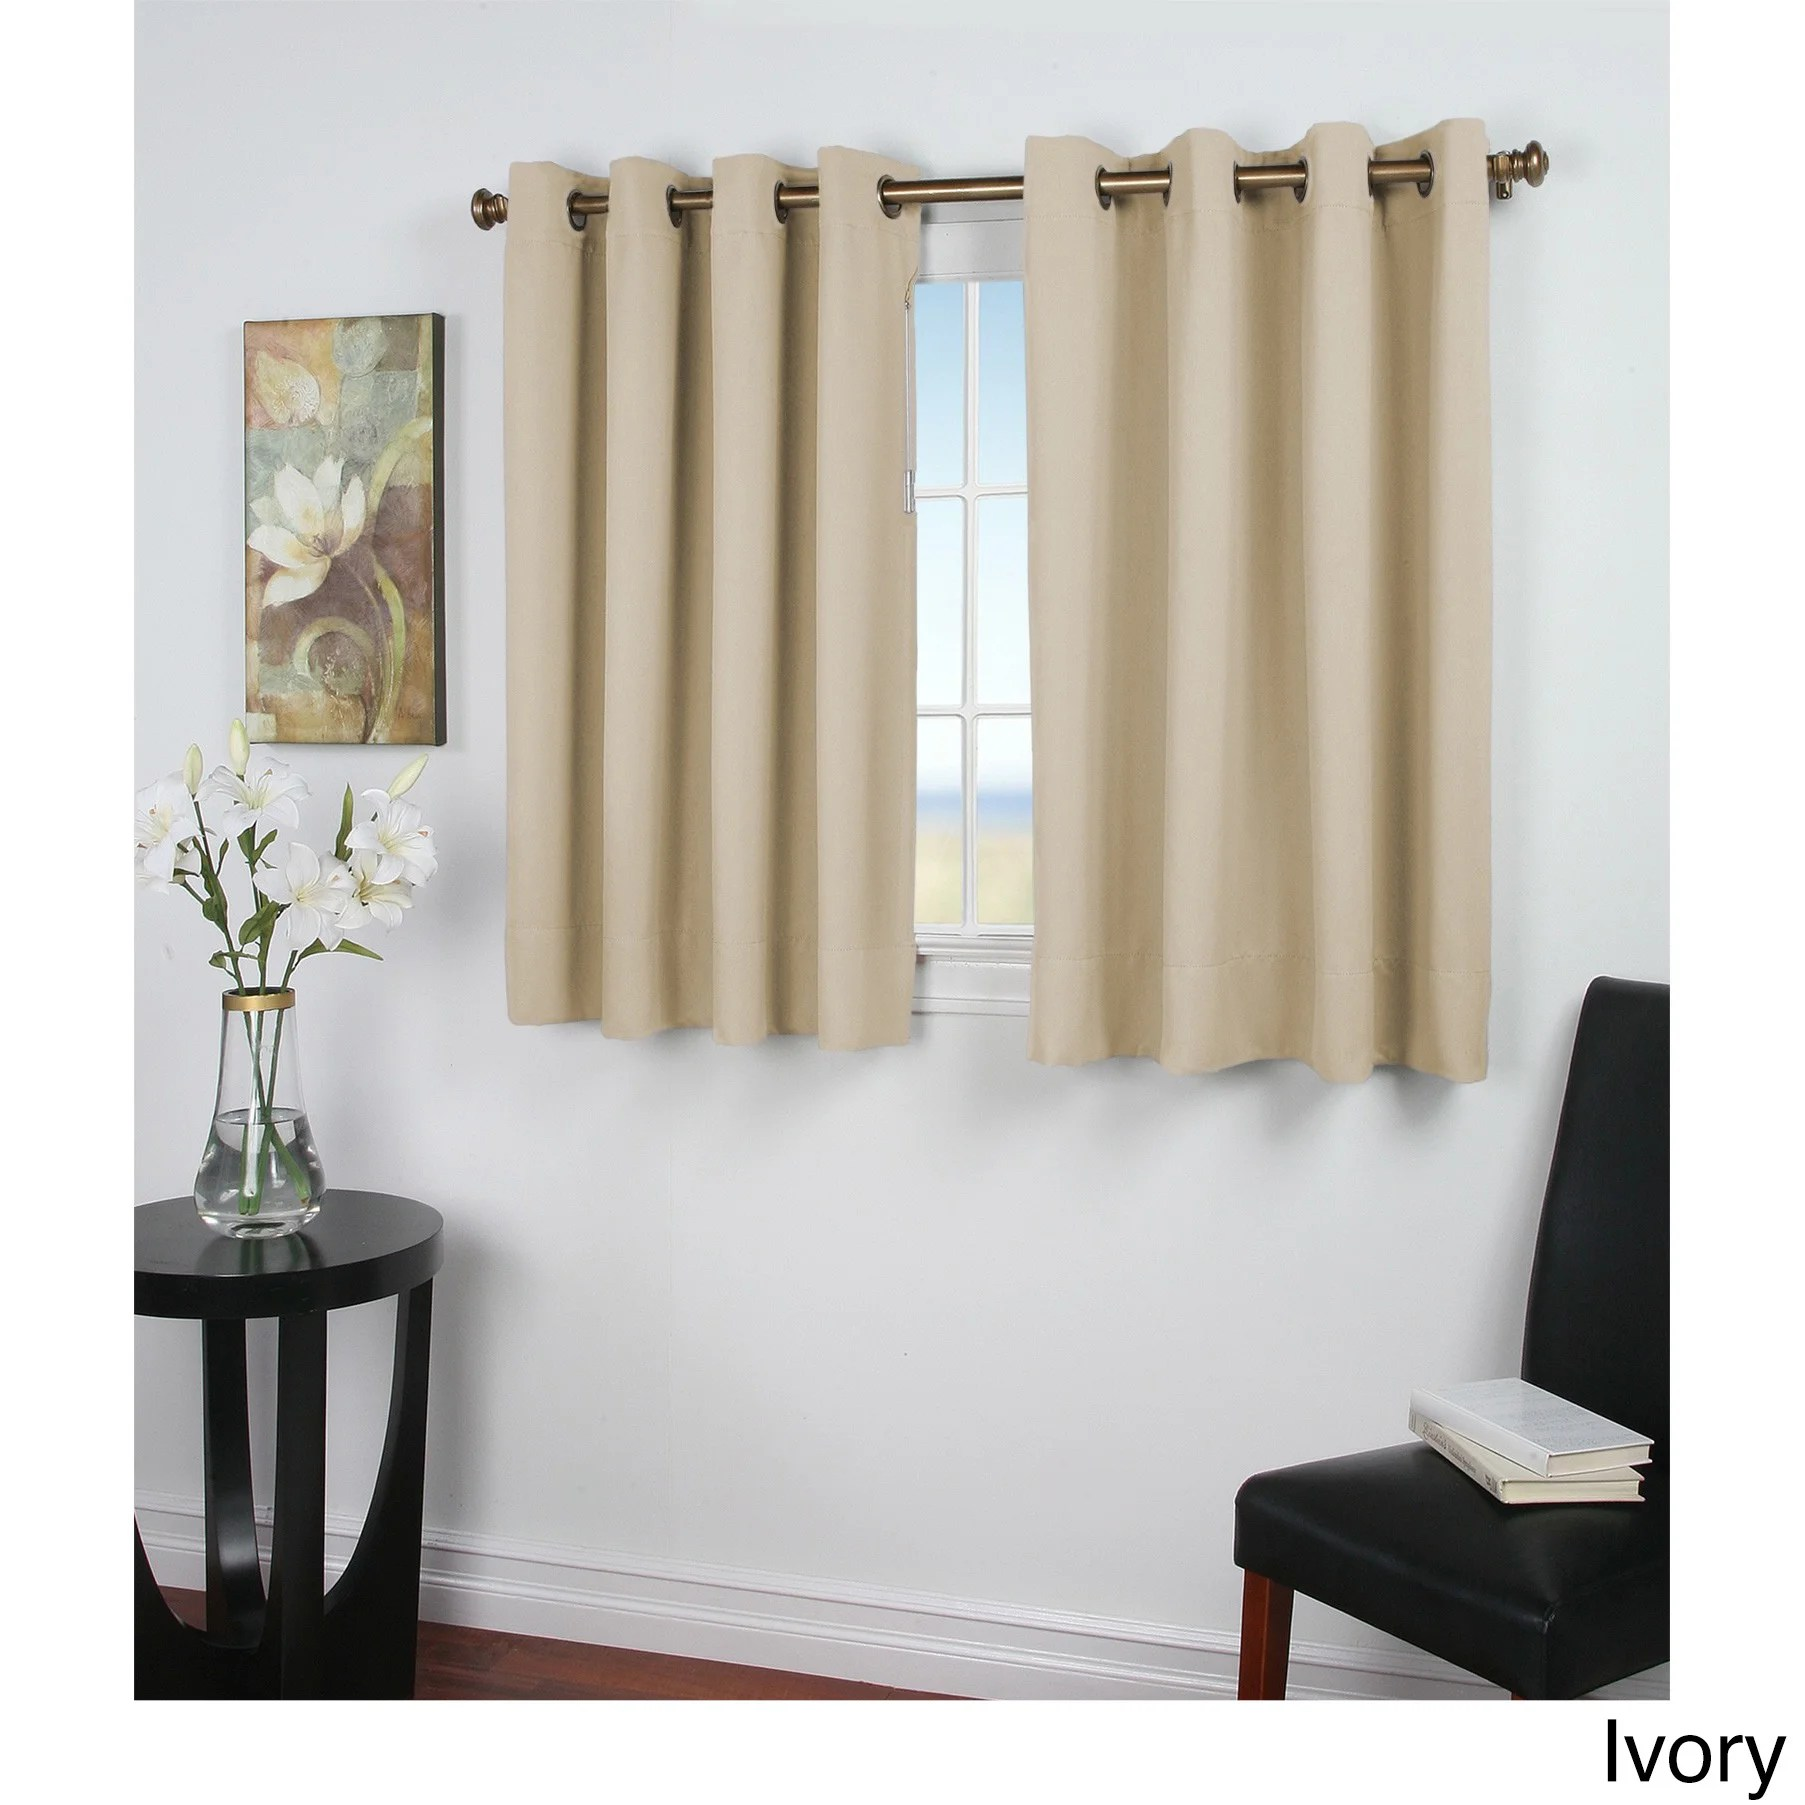 45 Inch Blackout Curtains Ultimate Blackout 45 Inch Short Length Grommet Curtain Panel